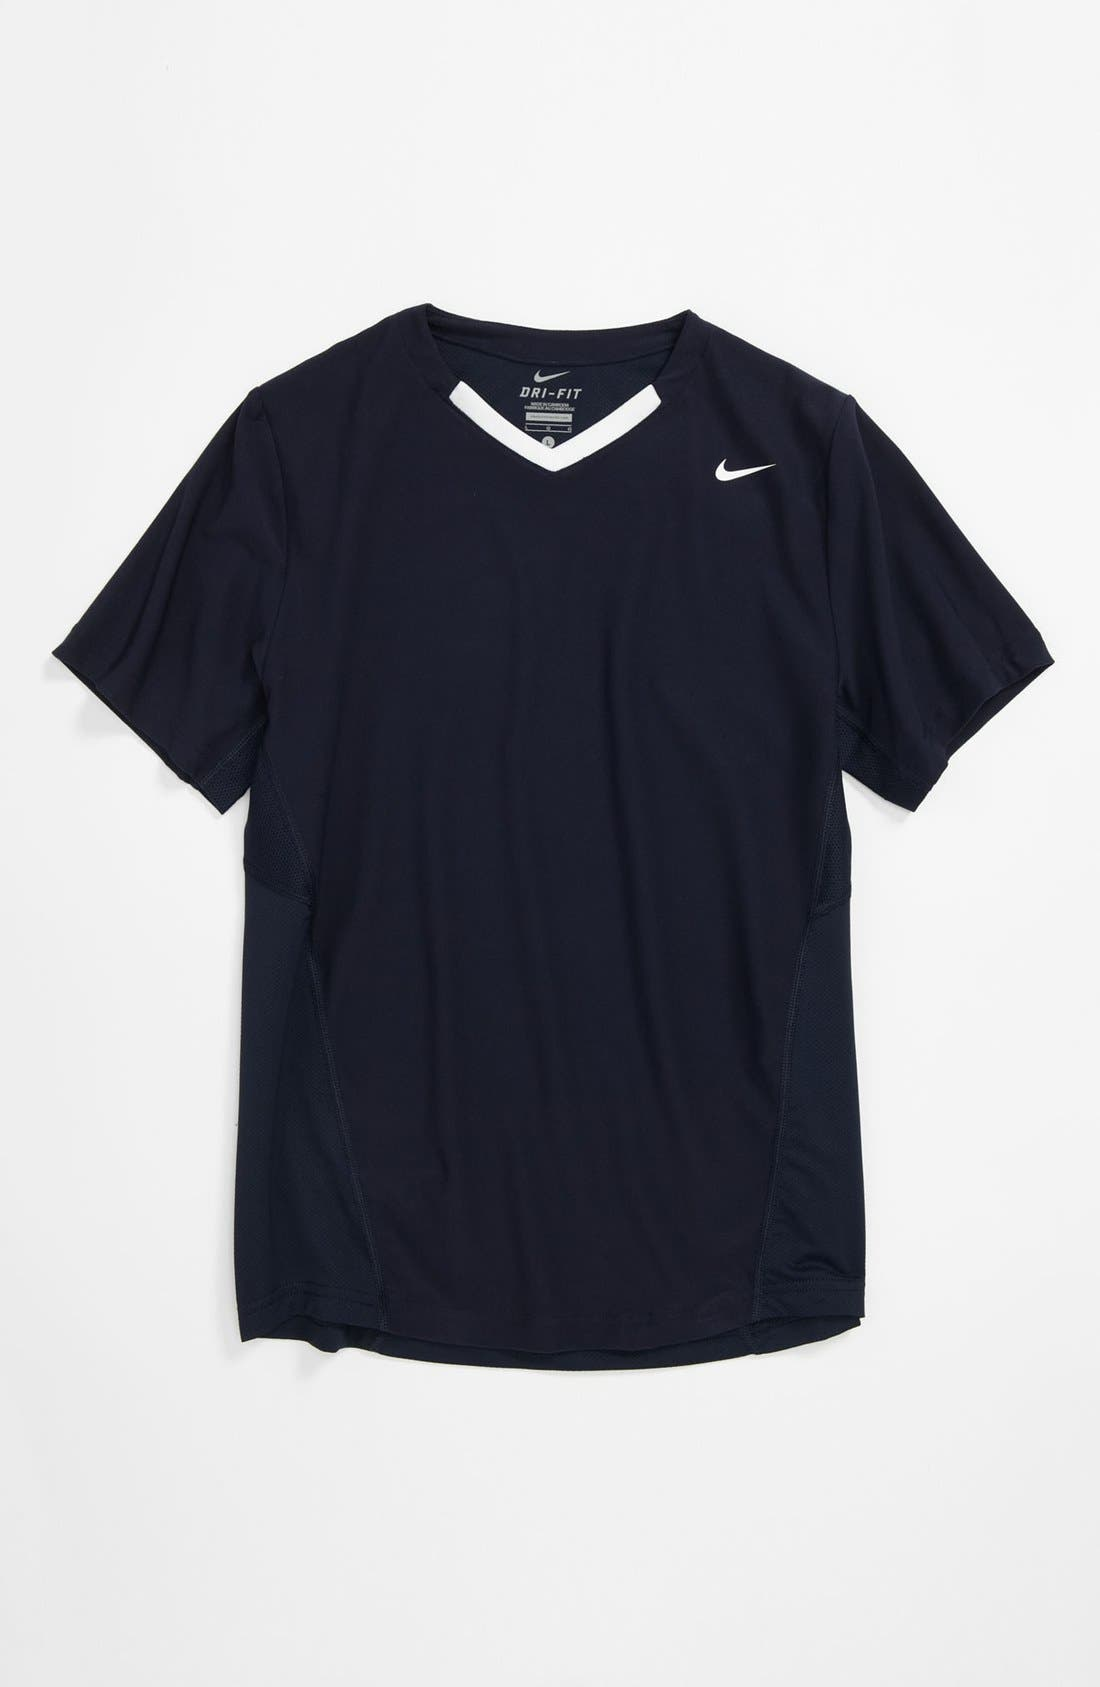 Main Image - Nike 'Premier - Rafa Nadal' Dri-FIT T-Shirt (Big Boys)